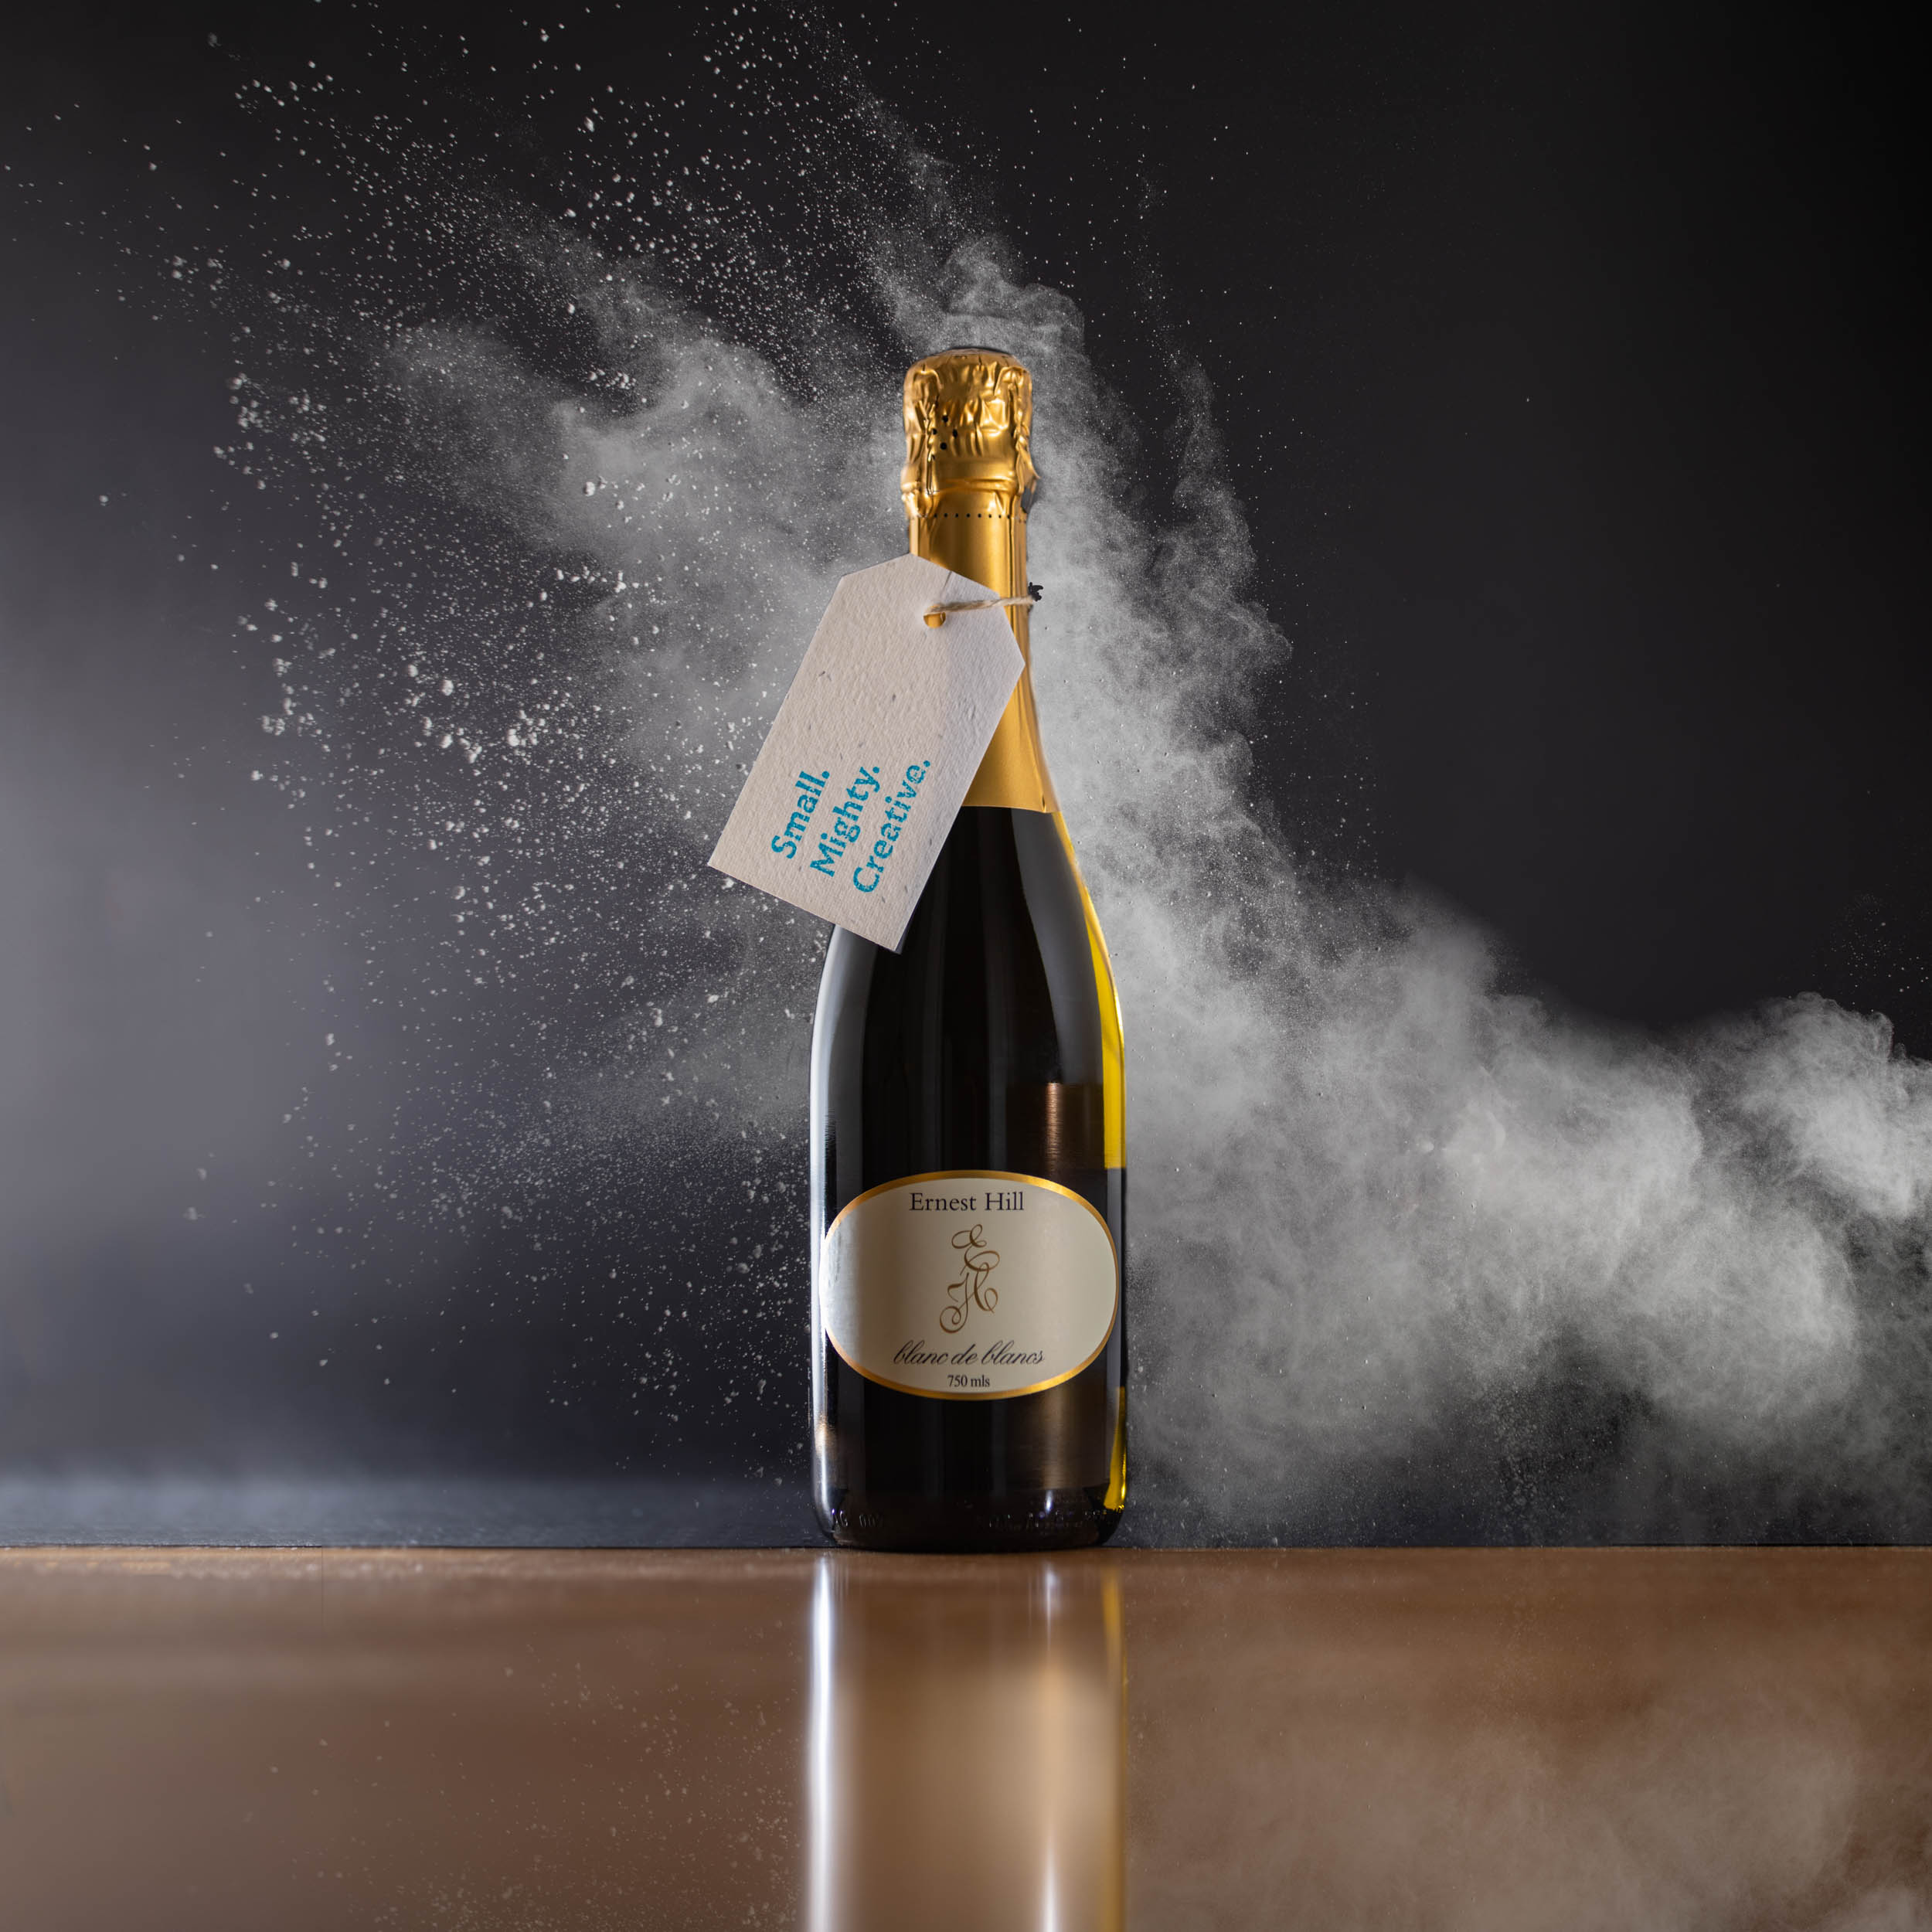 Ernest Hill Sparkling wine bottle with a gift tag attached, with an exploding of foam behind it